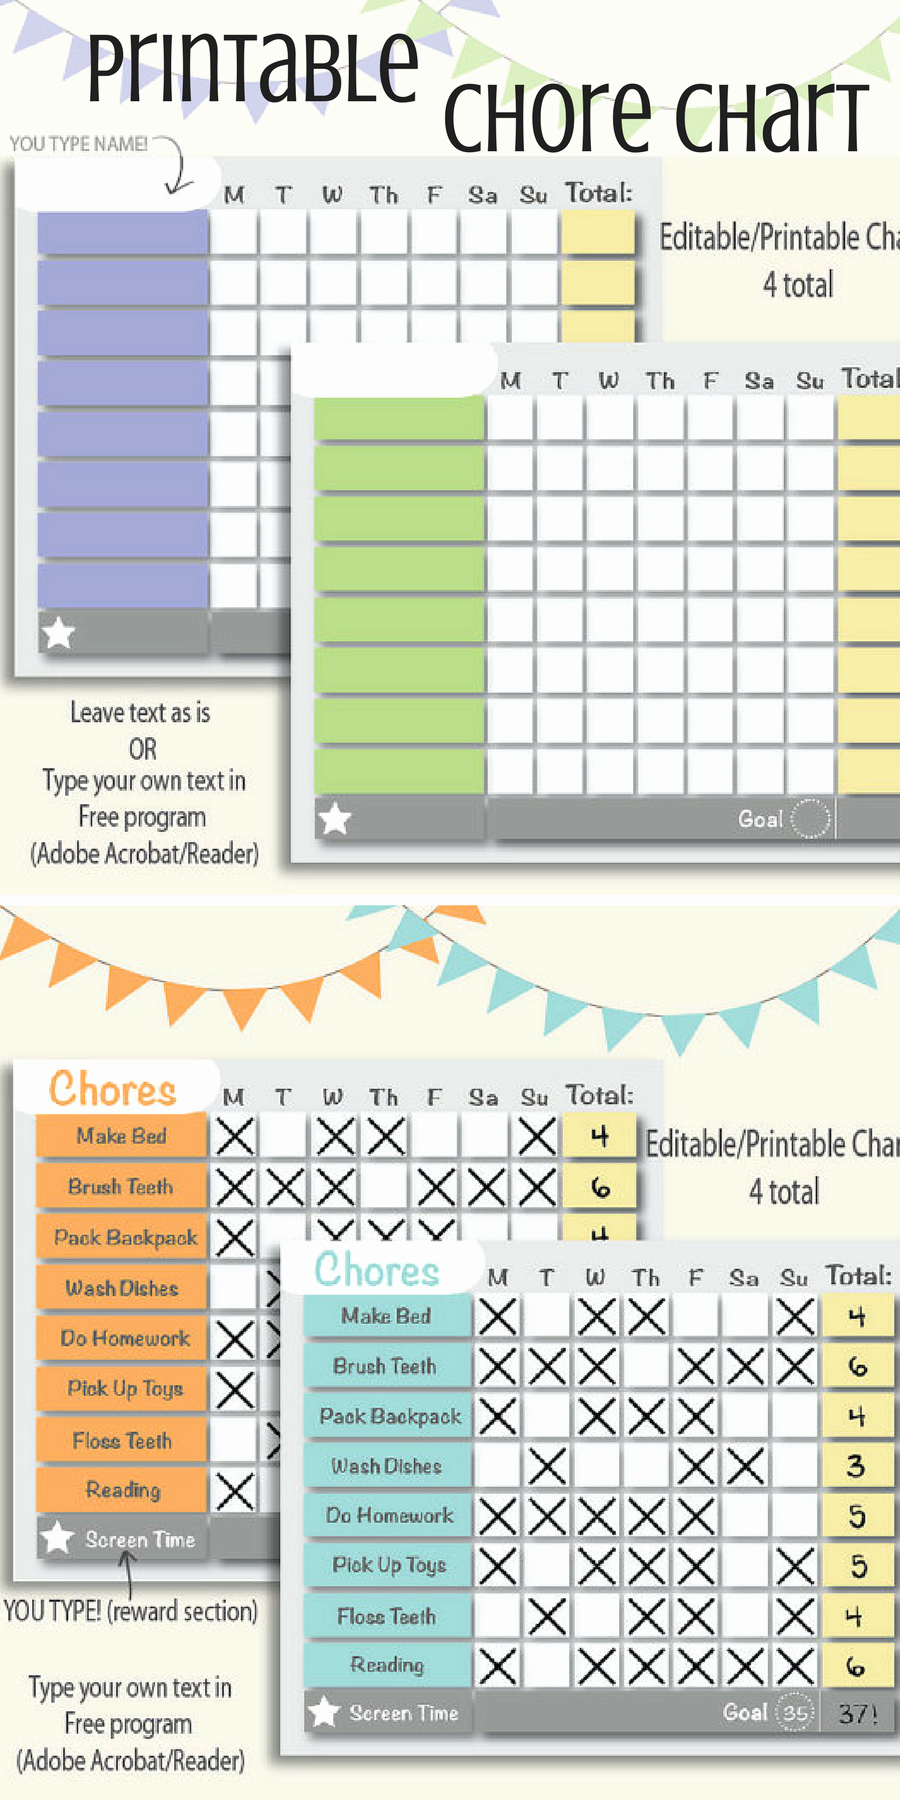 Chore Chart for Roommates Inspirational Very Handy Printable and Editable Chore Chart Great for